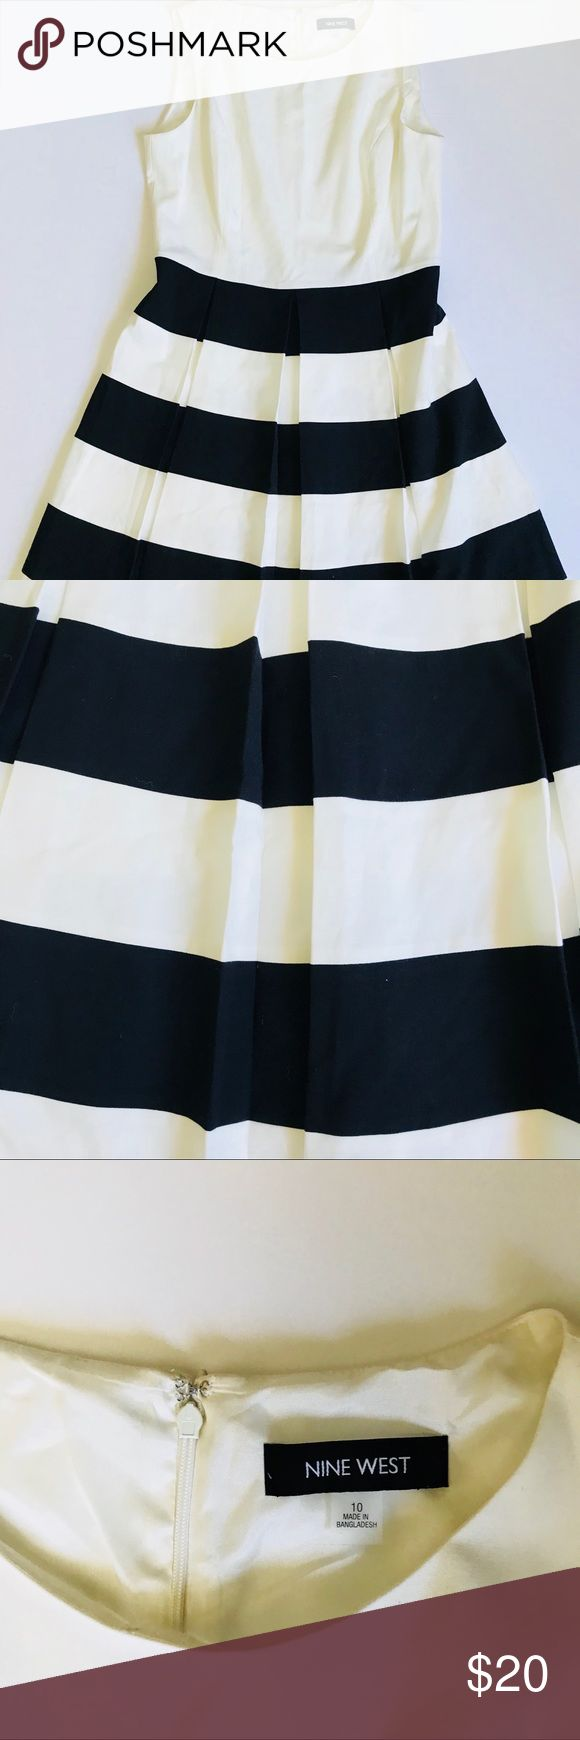 Nine West sleeveless crewneck striped dress Dress is in excellent condition let me know if you have any questions. Offers are welcomed Nine West Dresses